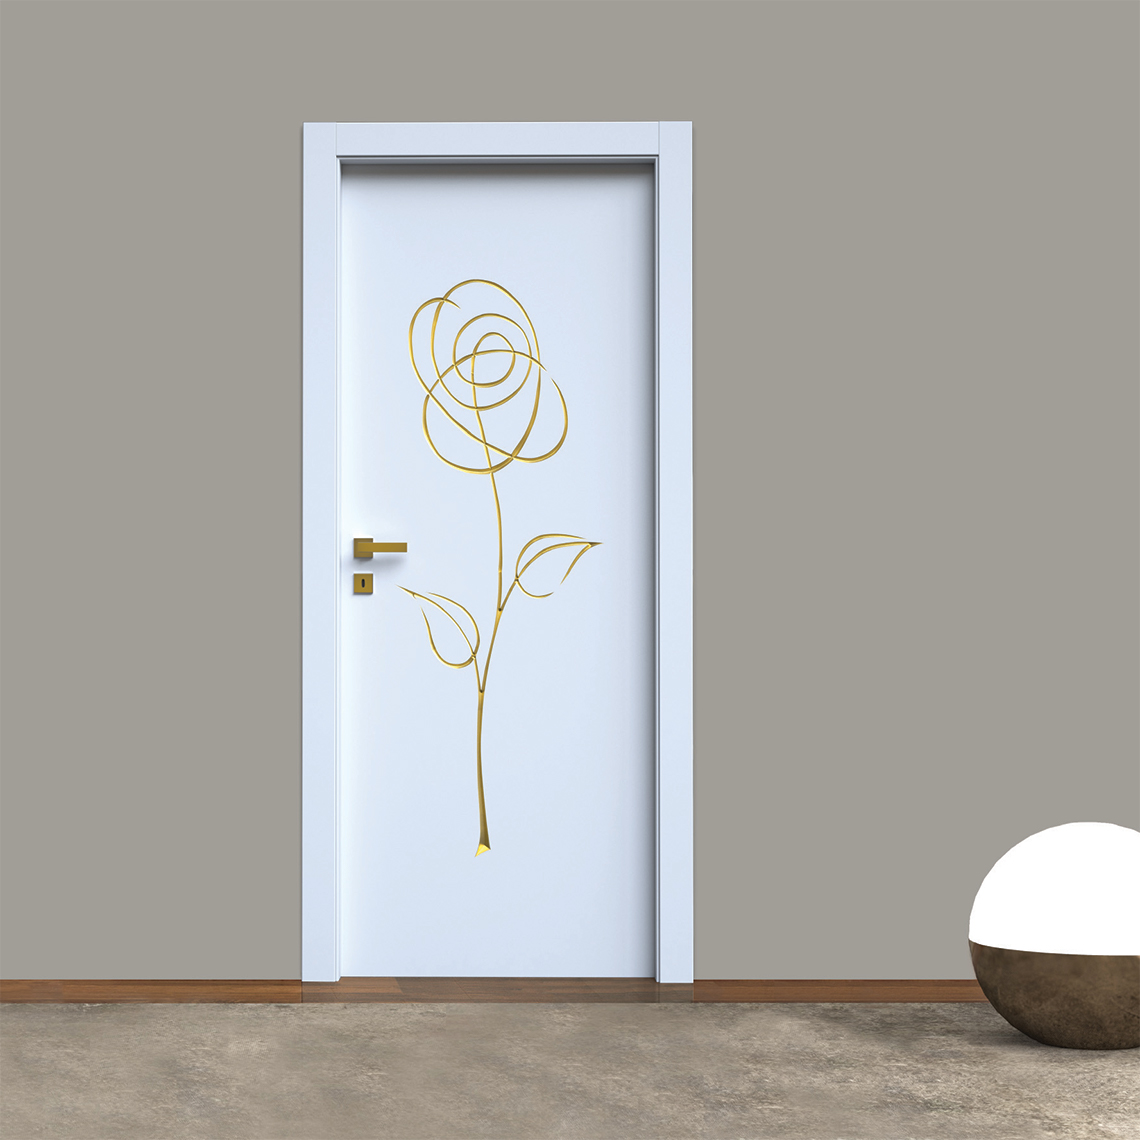 Porte incisione 3D laccate decoro Fantasy 03